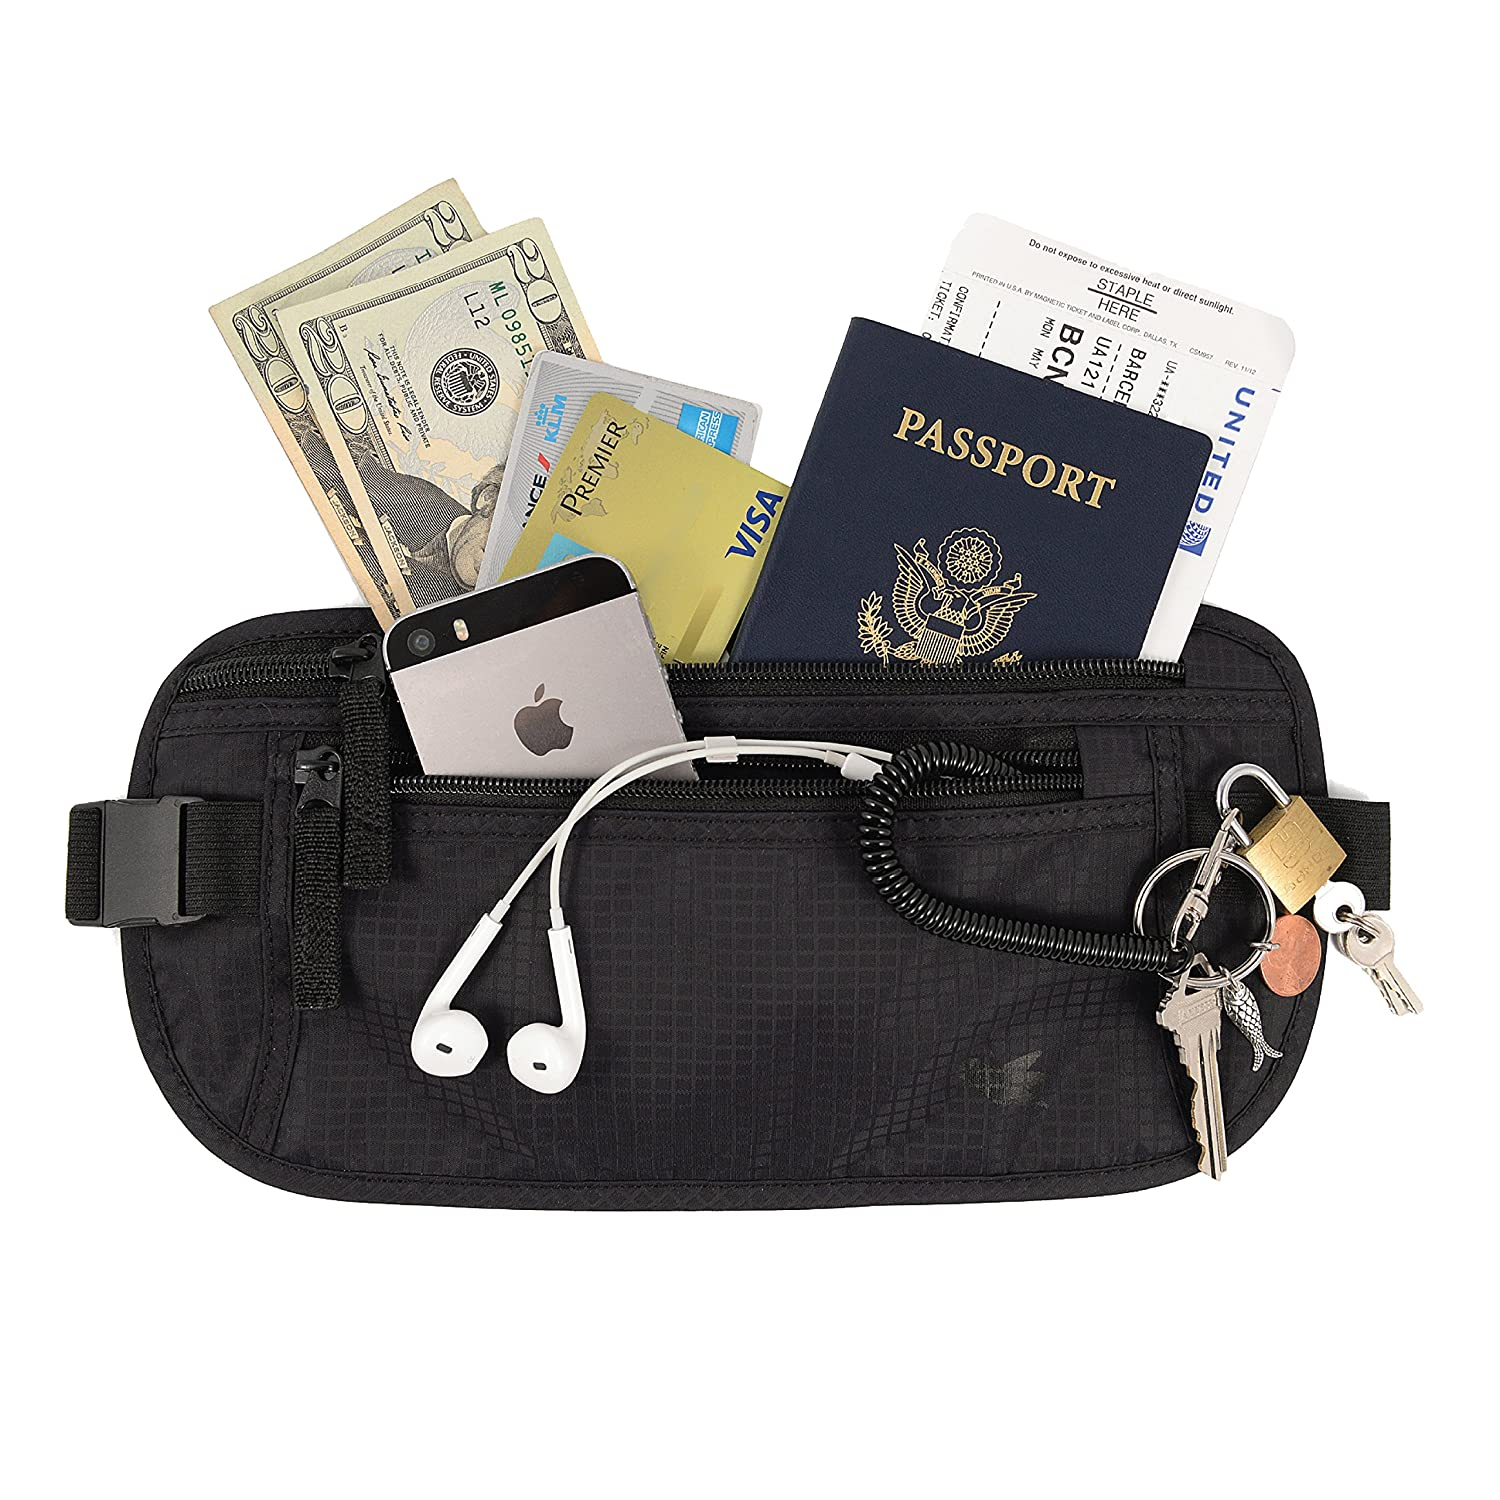 Invisible money belt by Nomalite | Slim fanny pack / hidden zip waist pouch with 3 pockets for women and men. Waterproof and anti RFID theft. For travel, also ideal for gym, running, hiking, cycling.